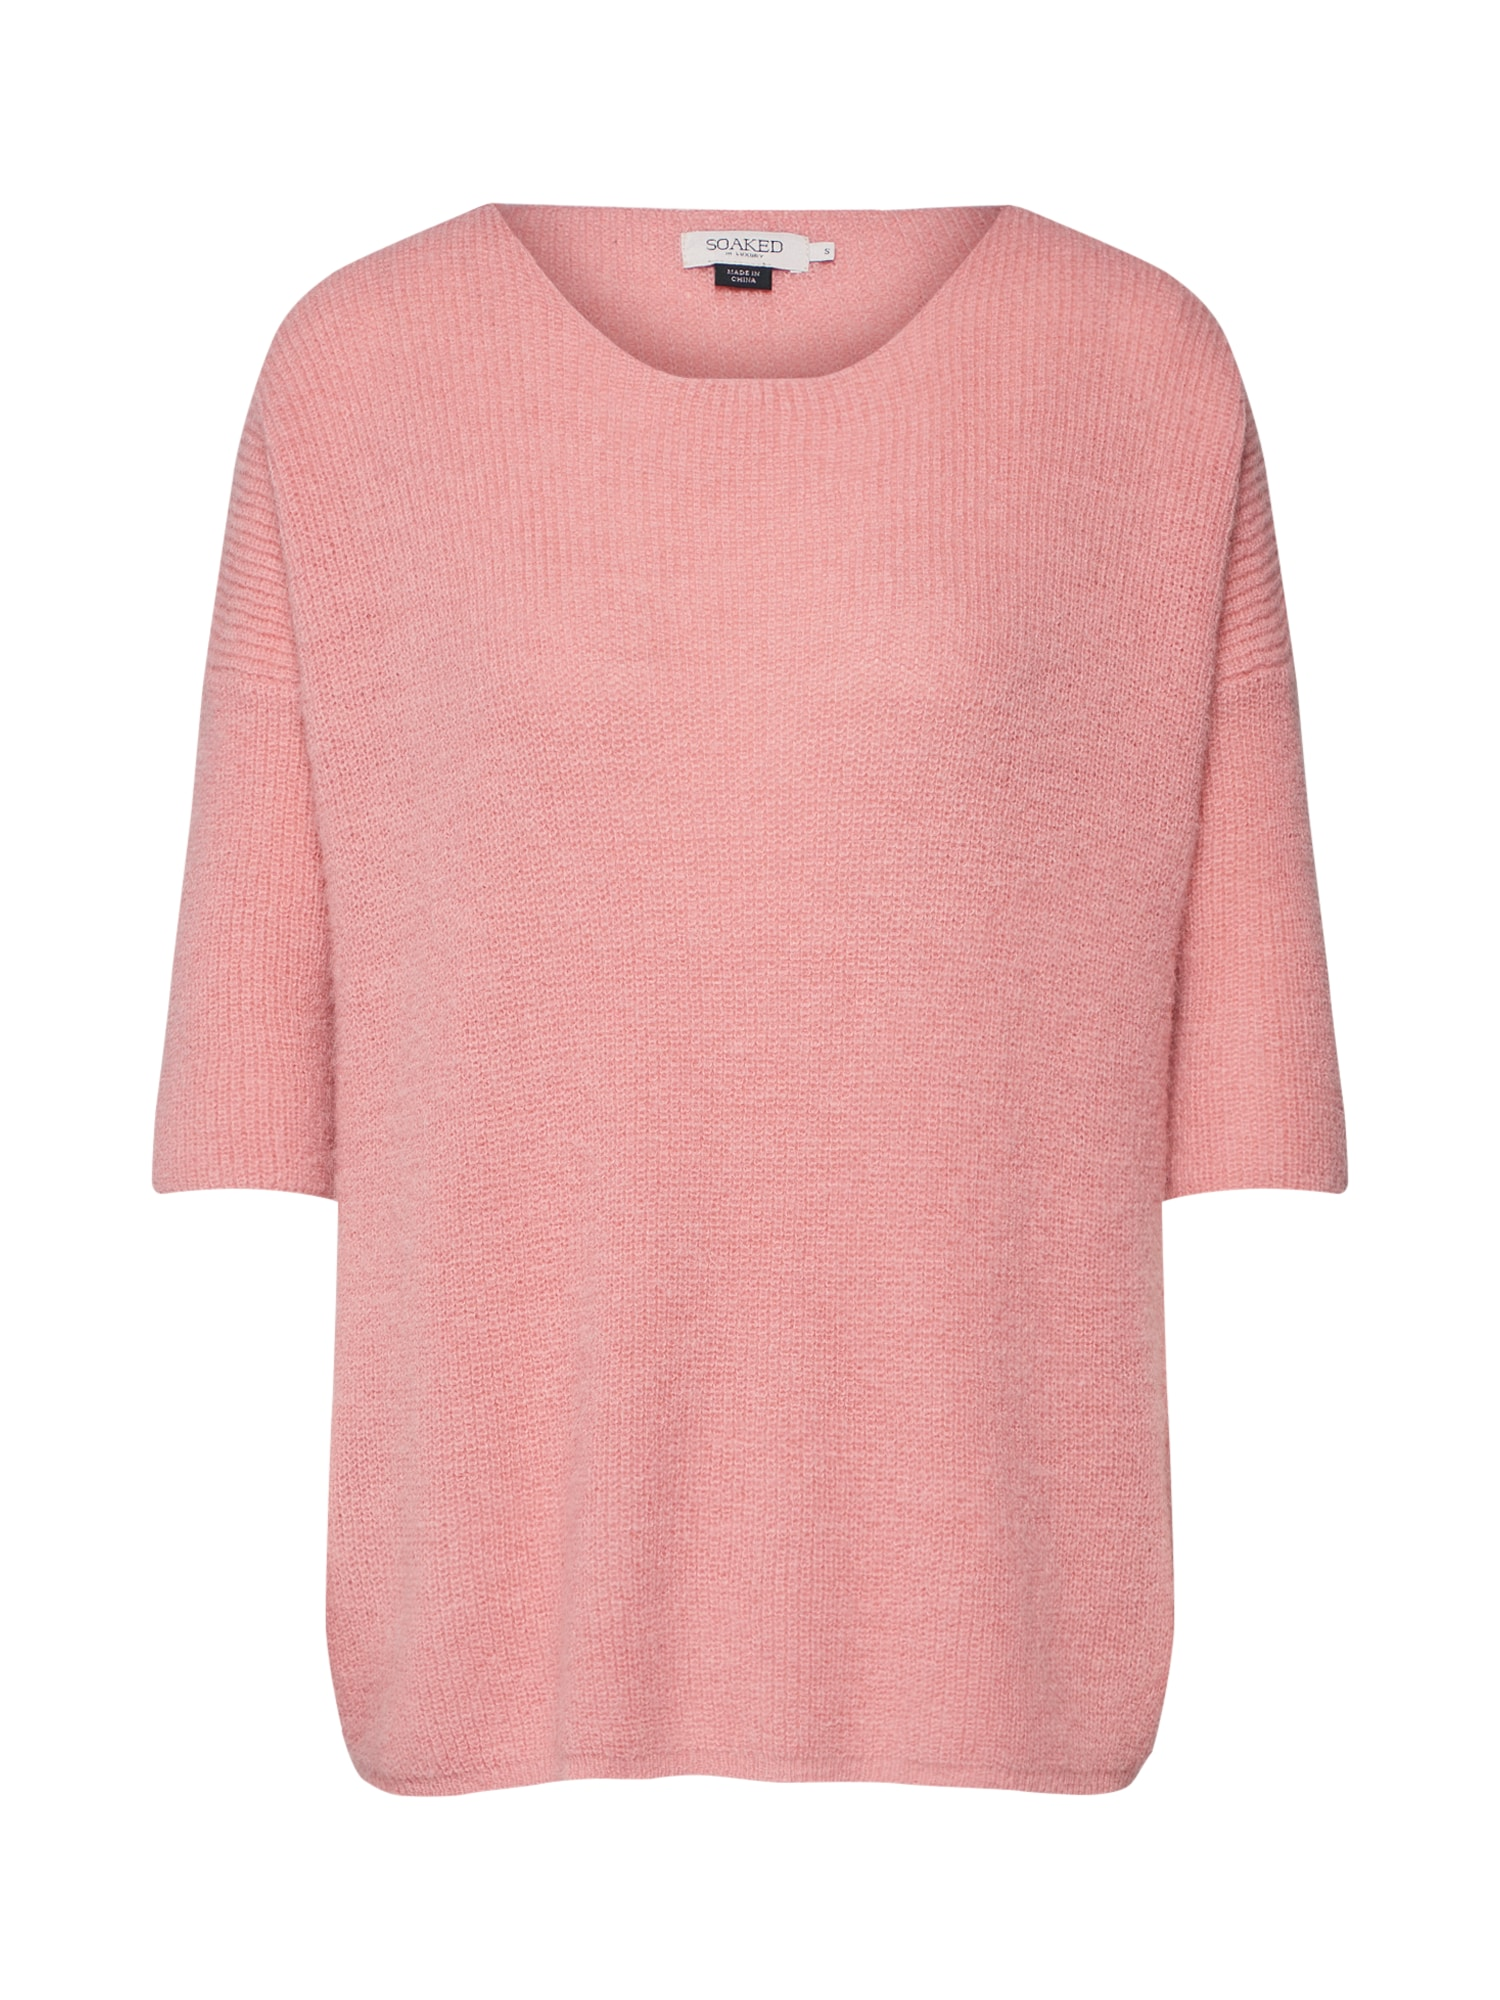 Svetr Tuesday Jumper SO 2019 Forever Irresistible pink SOAKED IN LUXURY